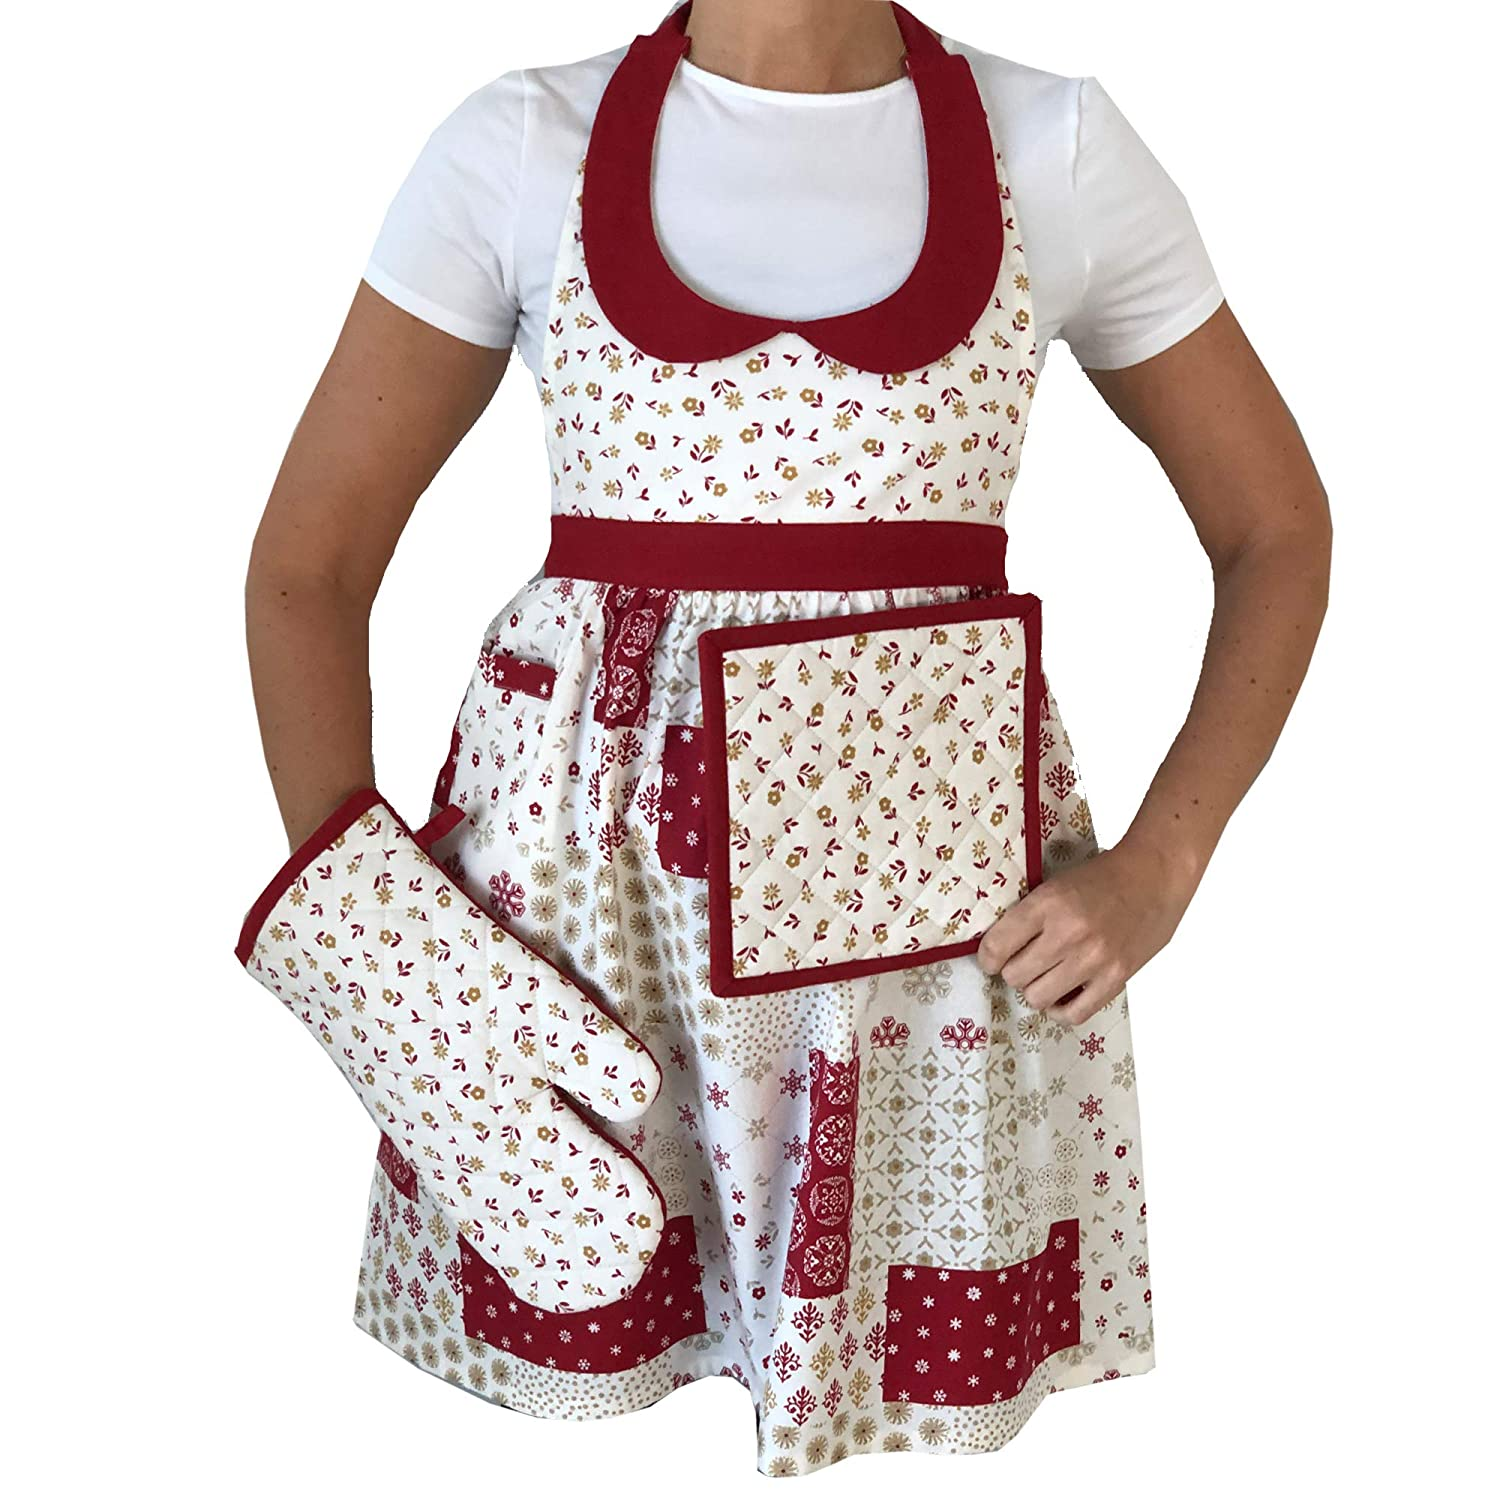 Lintex Snowflakes Christmas Apron, Pot Holder and Oven Mitt Set - Red and Gold Xmas Holiday Cotton Apron with Pocket and Heat Resistant Oven Mitt and Pot Holder Set, 3 Piece Women's Apron Set